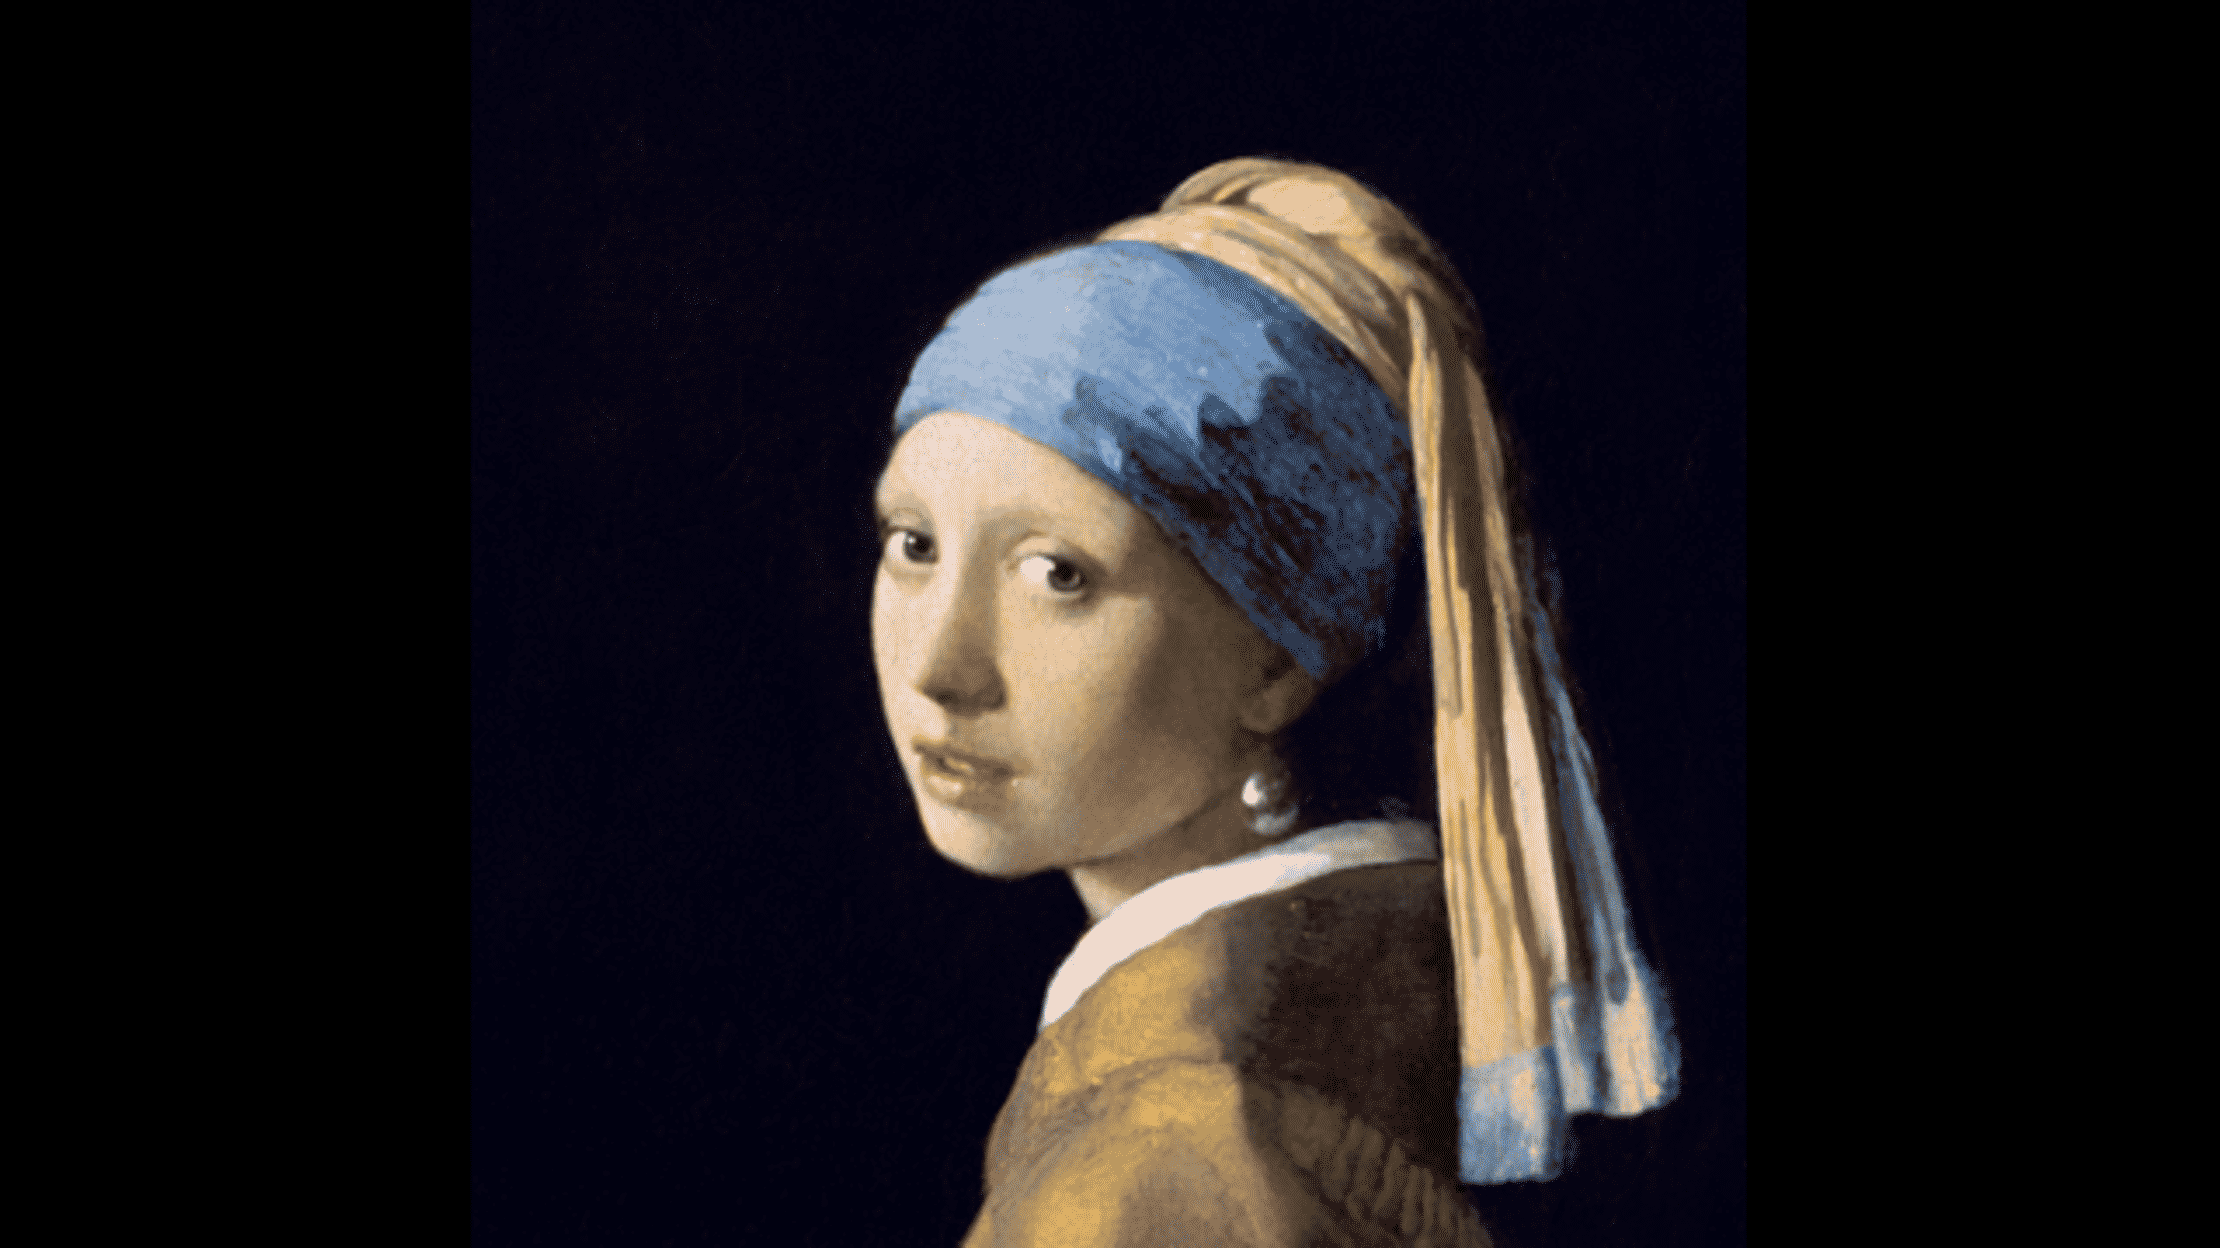 5. Girl with a Pearl Earring